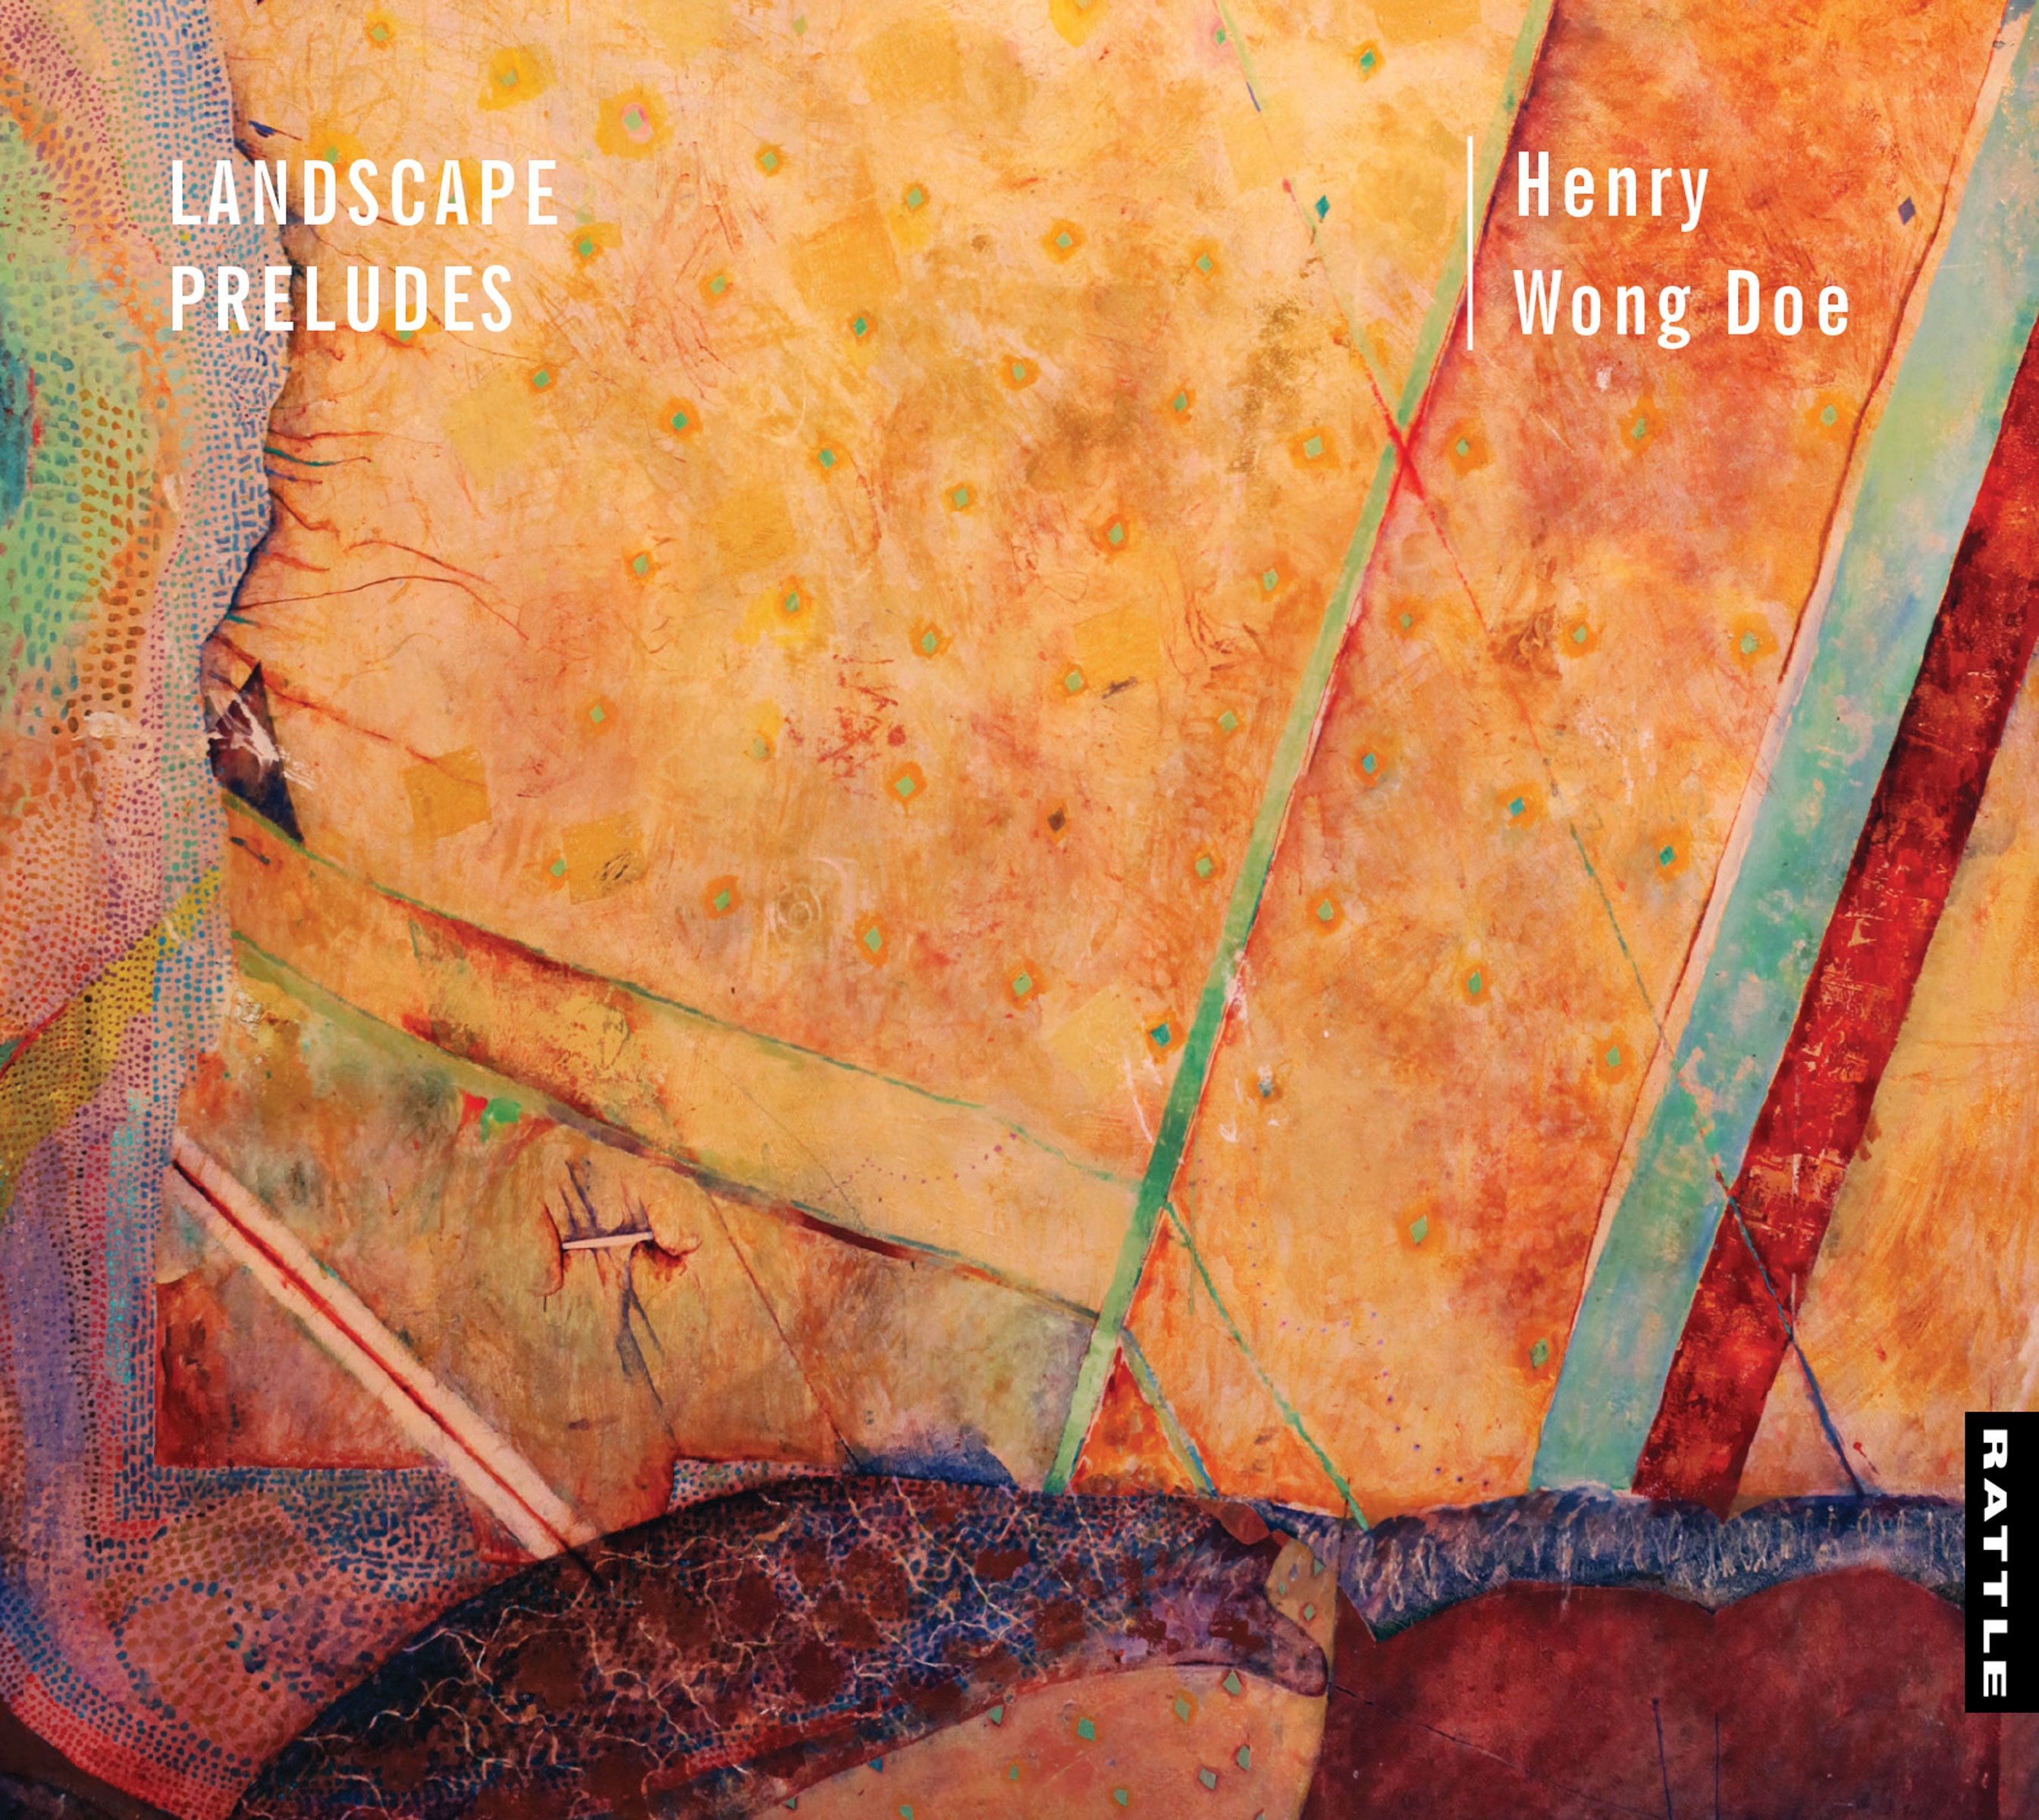 Henry Wong Doe | Landscape Preludes - downloadable MP3 ALBUM